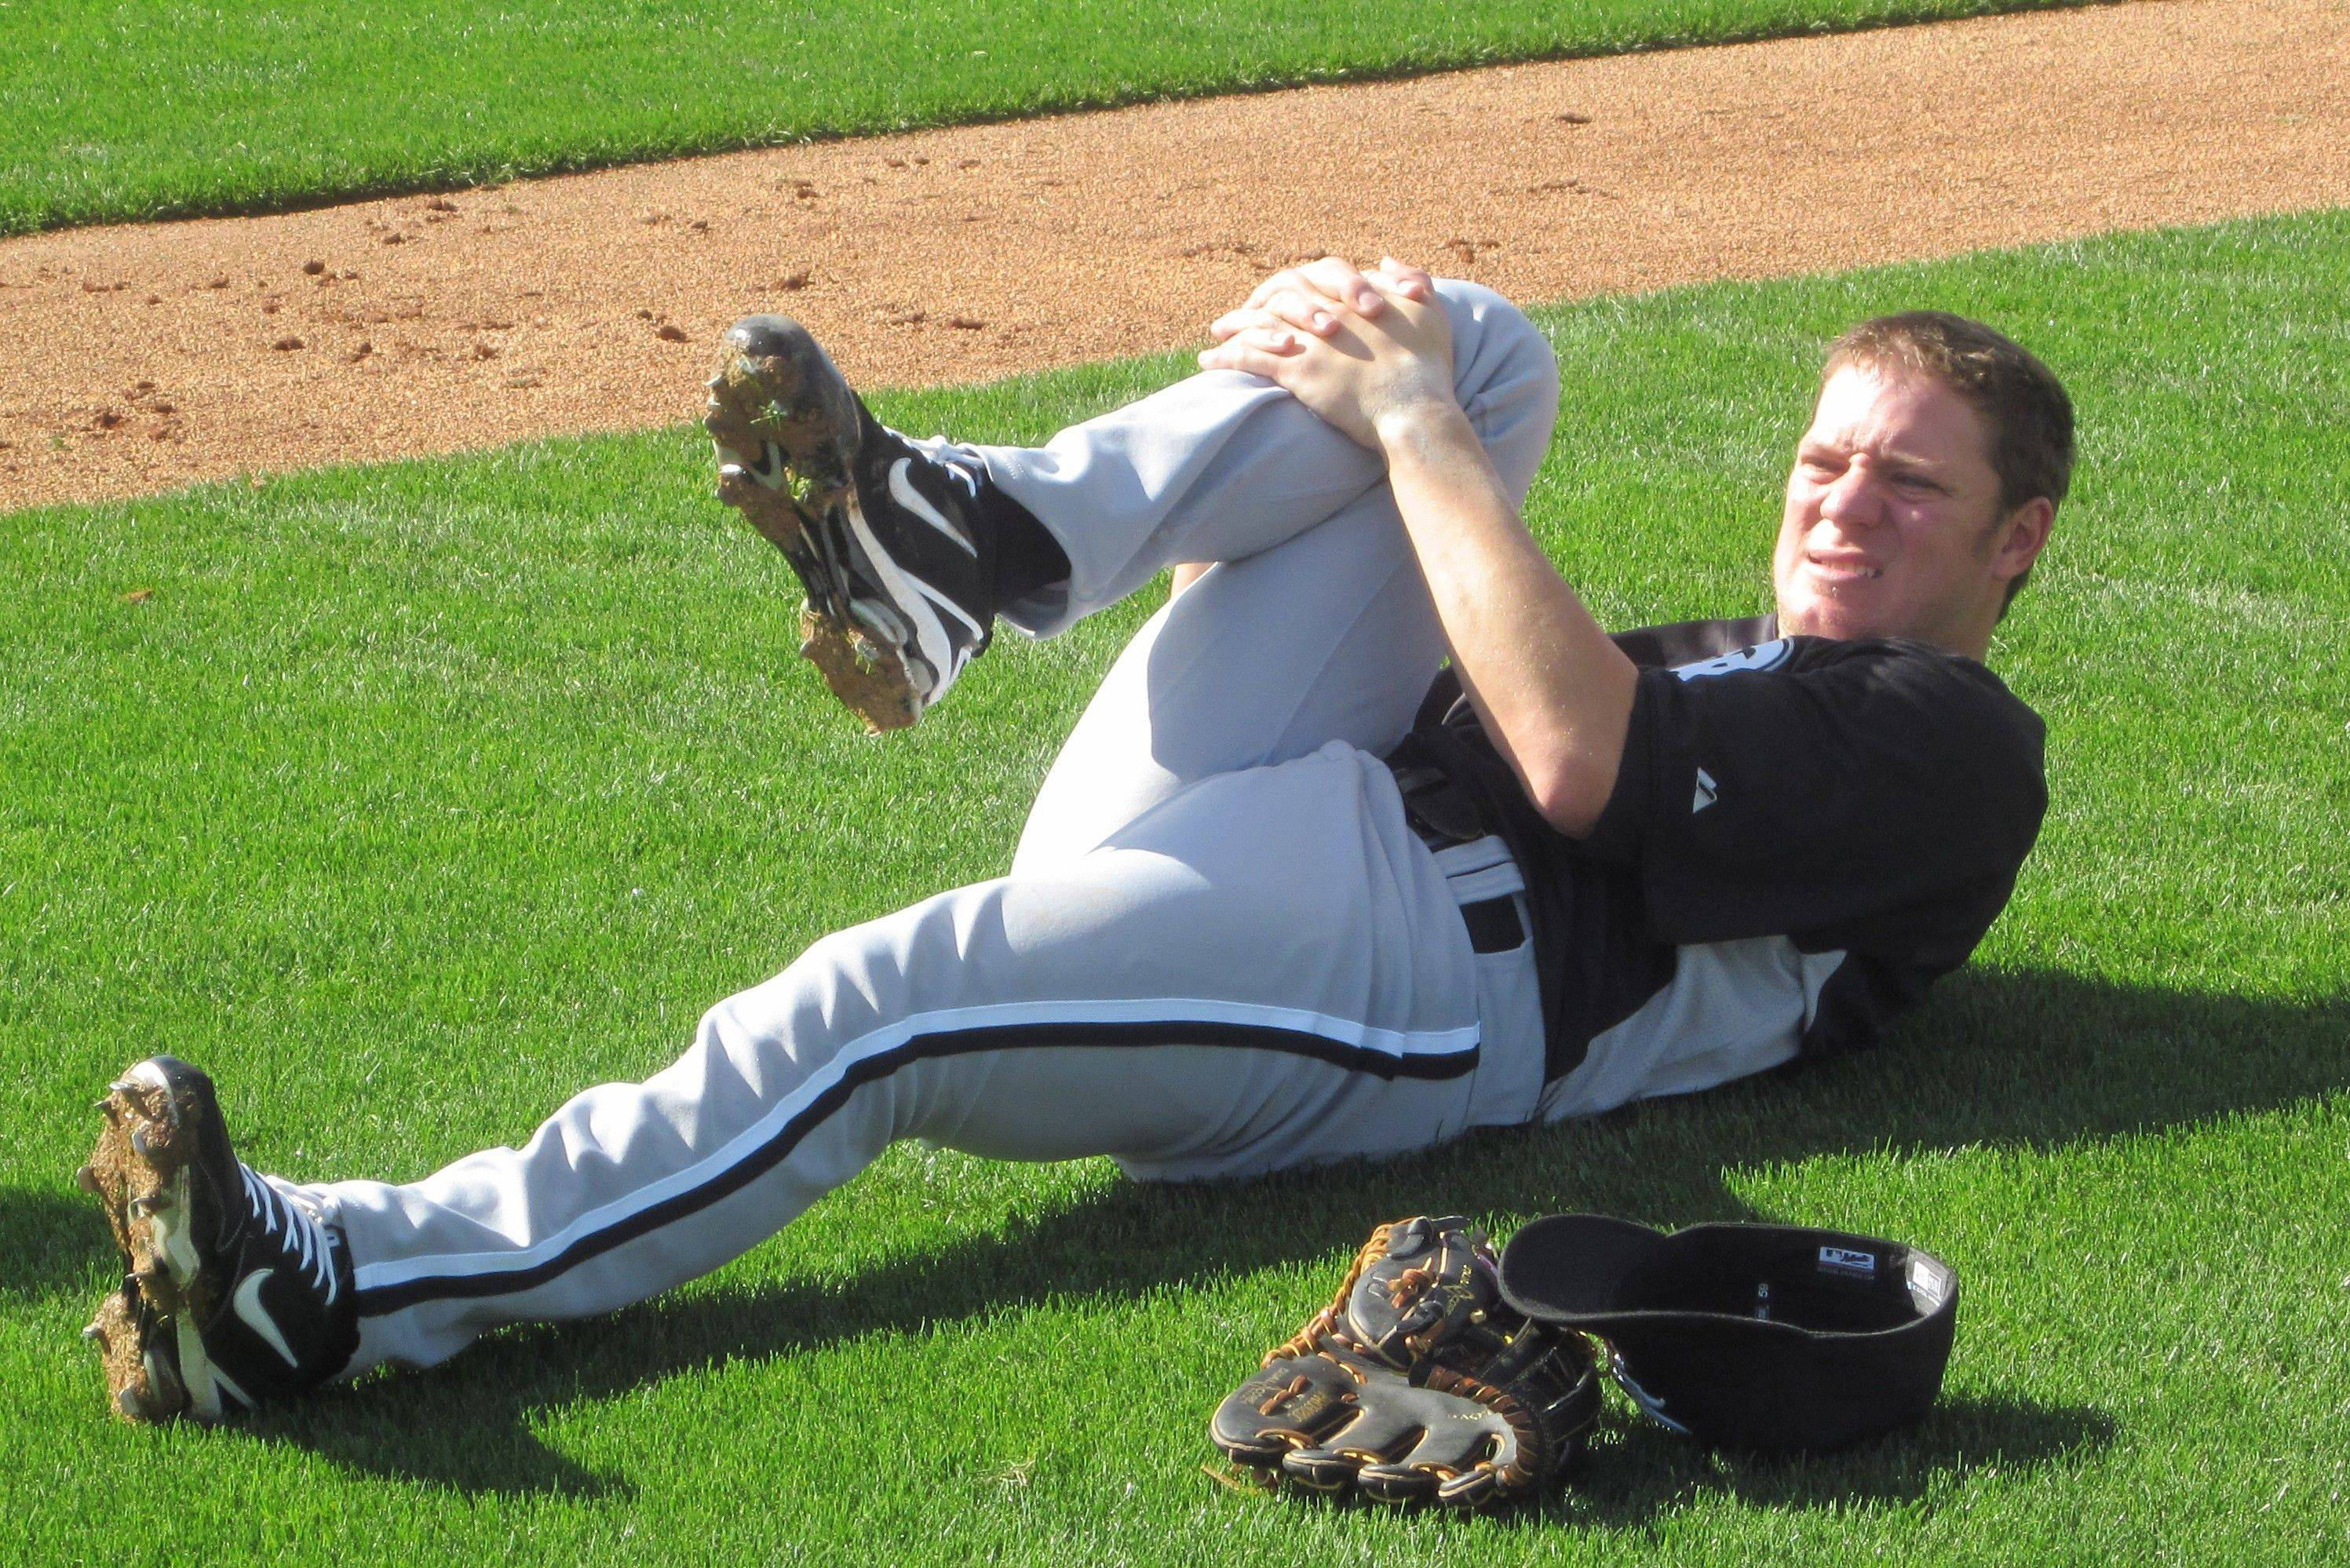 Starting pitcher Jake Peavy gets ready for work Monday at the White Sox training facilities in Glendale, Ariz.